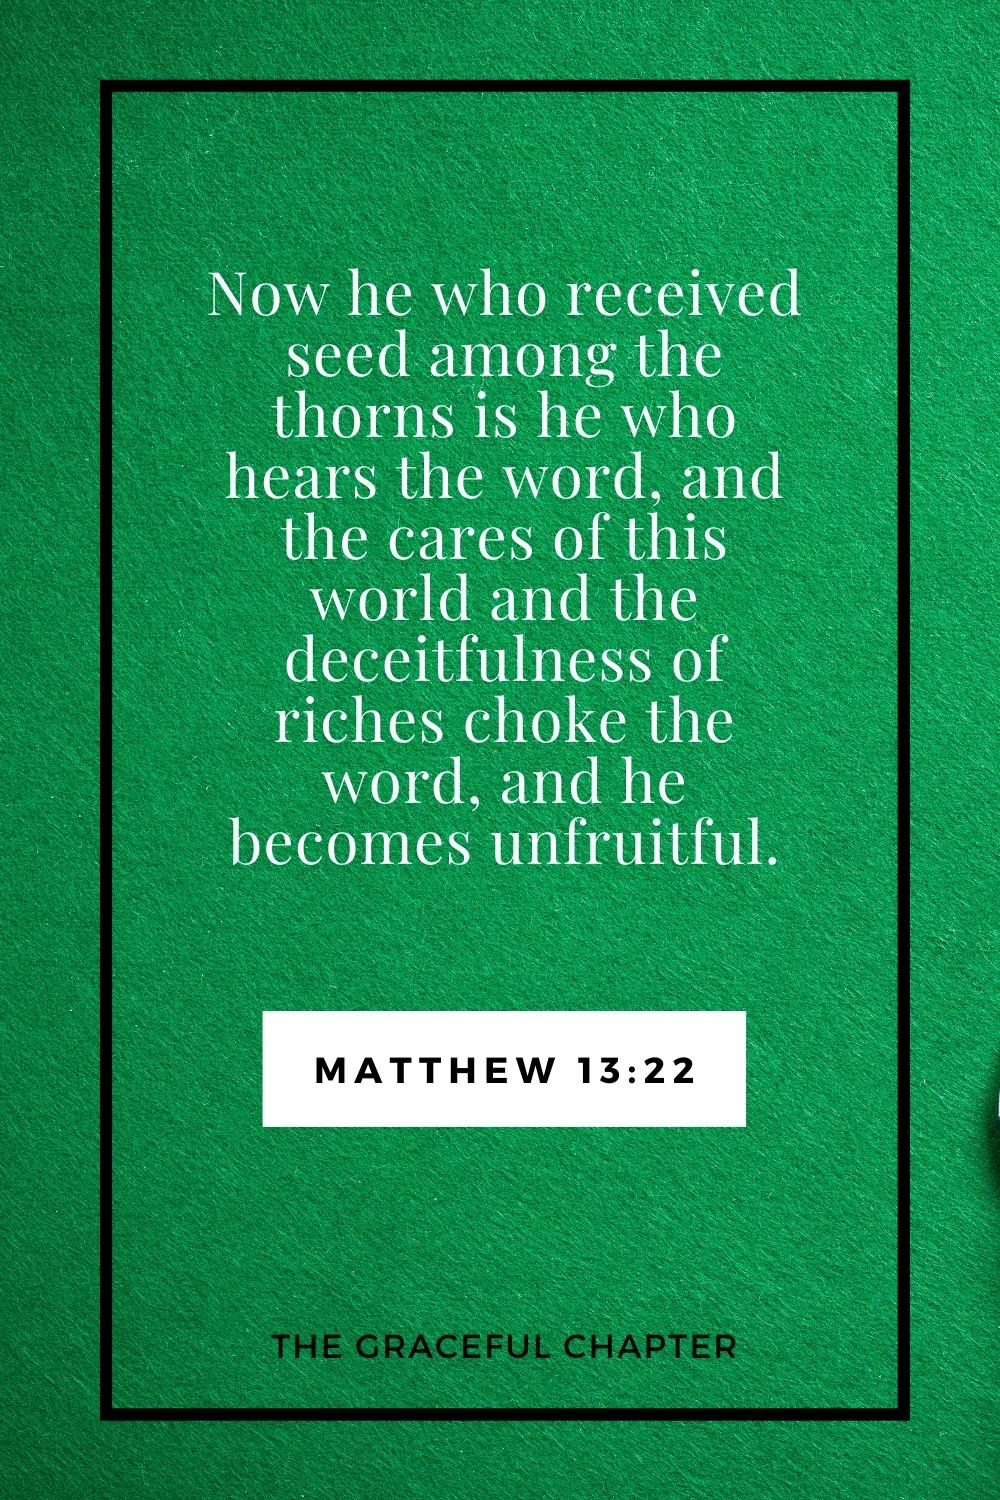 Now he who received seed among the thorns is he who hears the word, and the cares of this world and the deceitfulness of riches choke the word, and he becomes unfruitful. Matthew 13:22